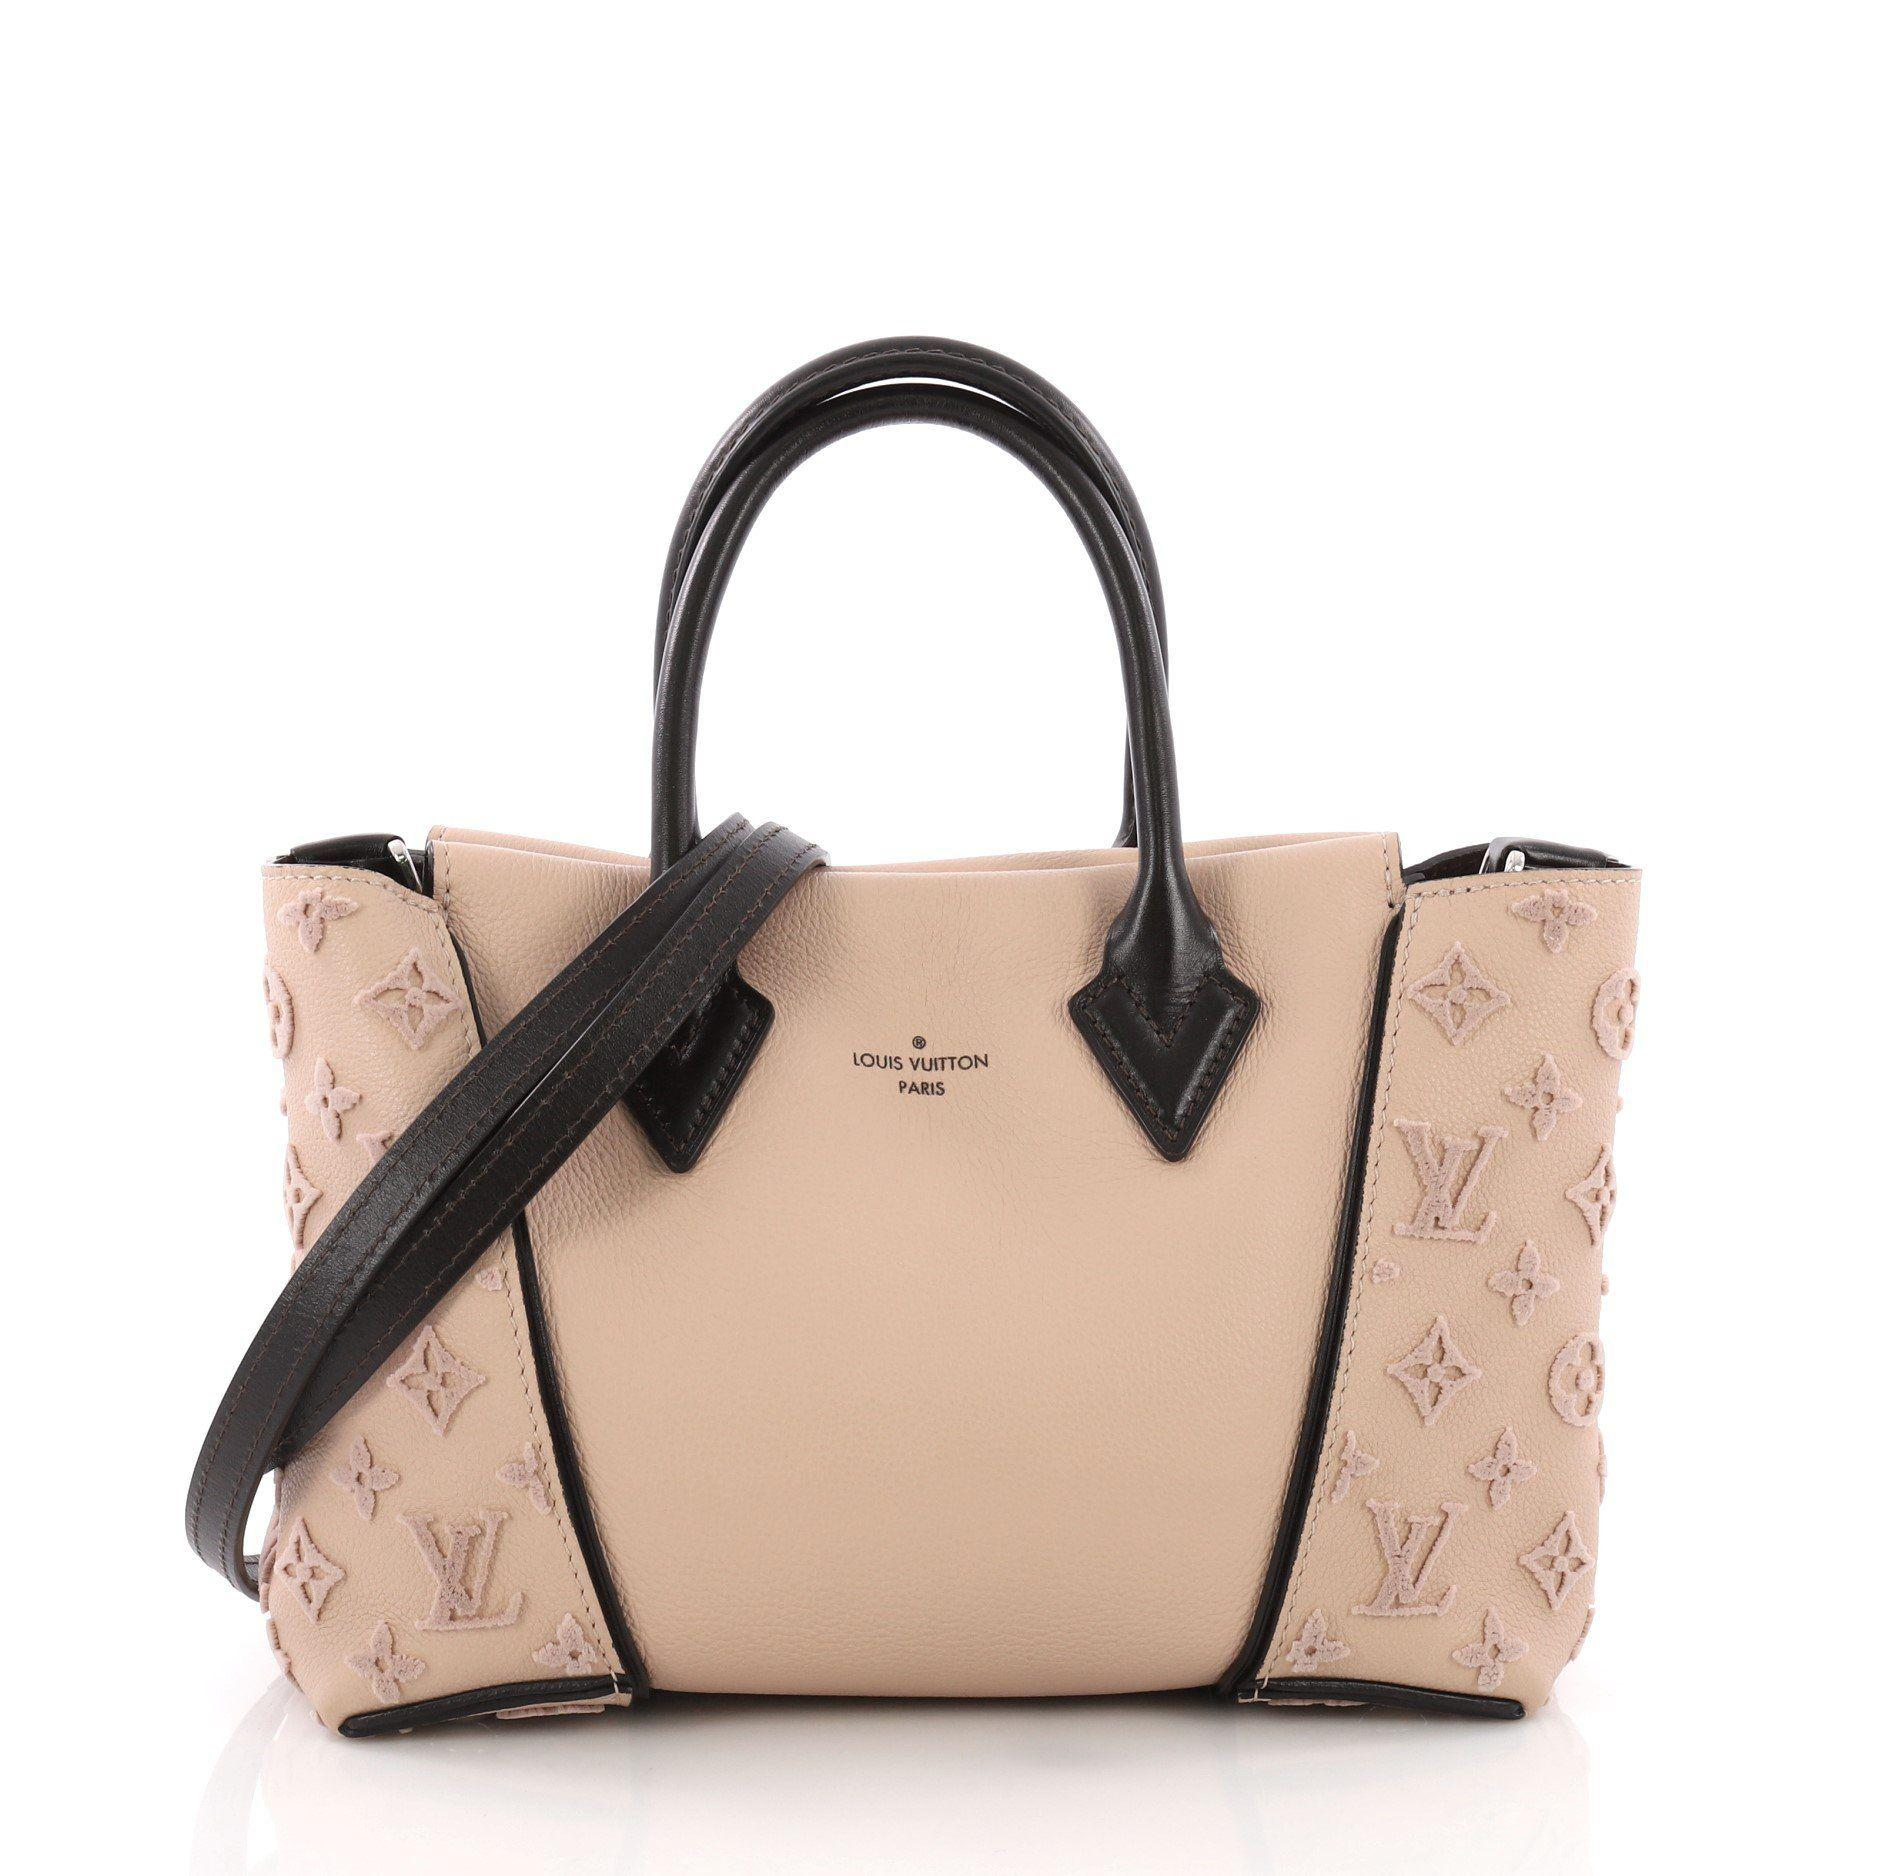 02d46ae0a8f0 Lyst - Louis Vuitton Pre Owned W Tote Veau Cachemire Calfskin Bb